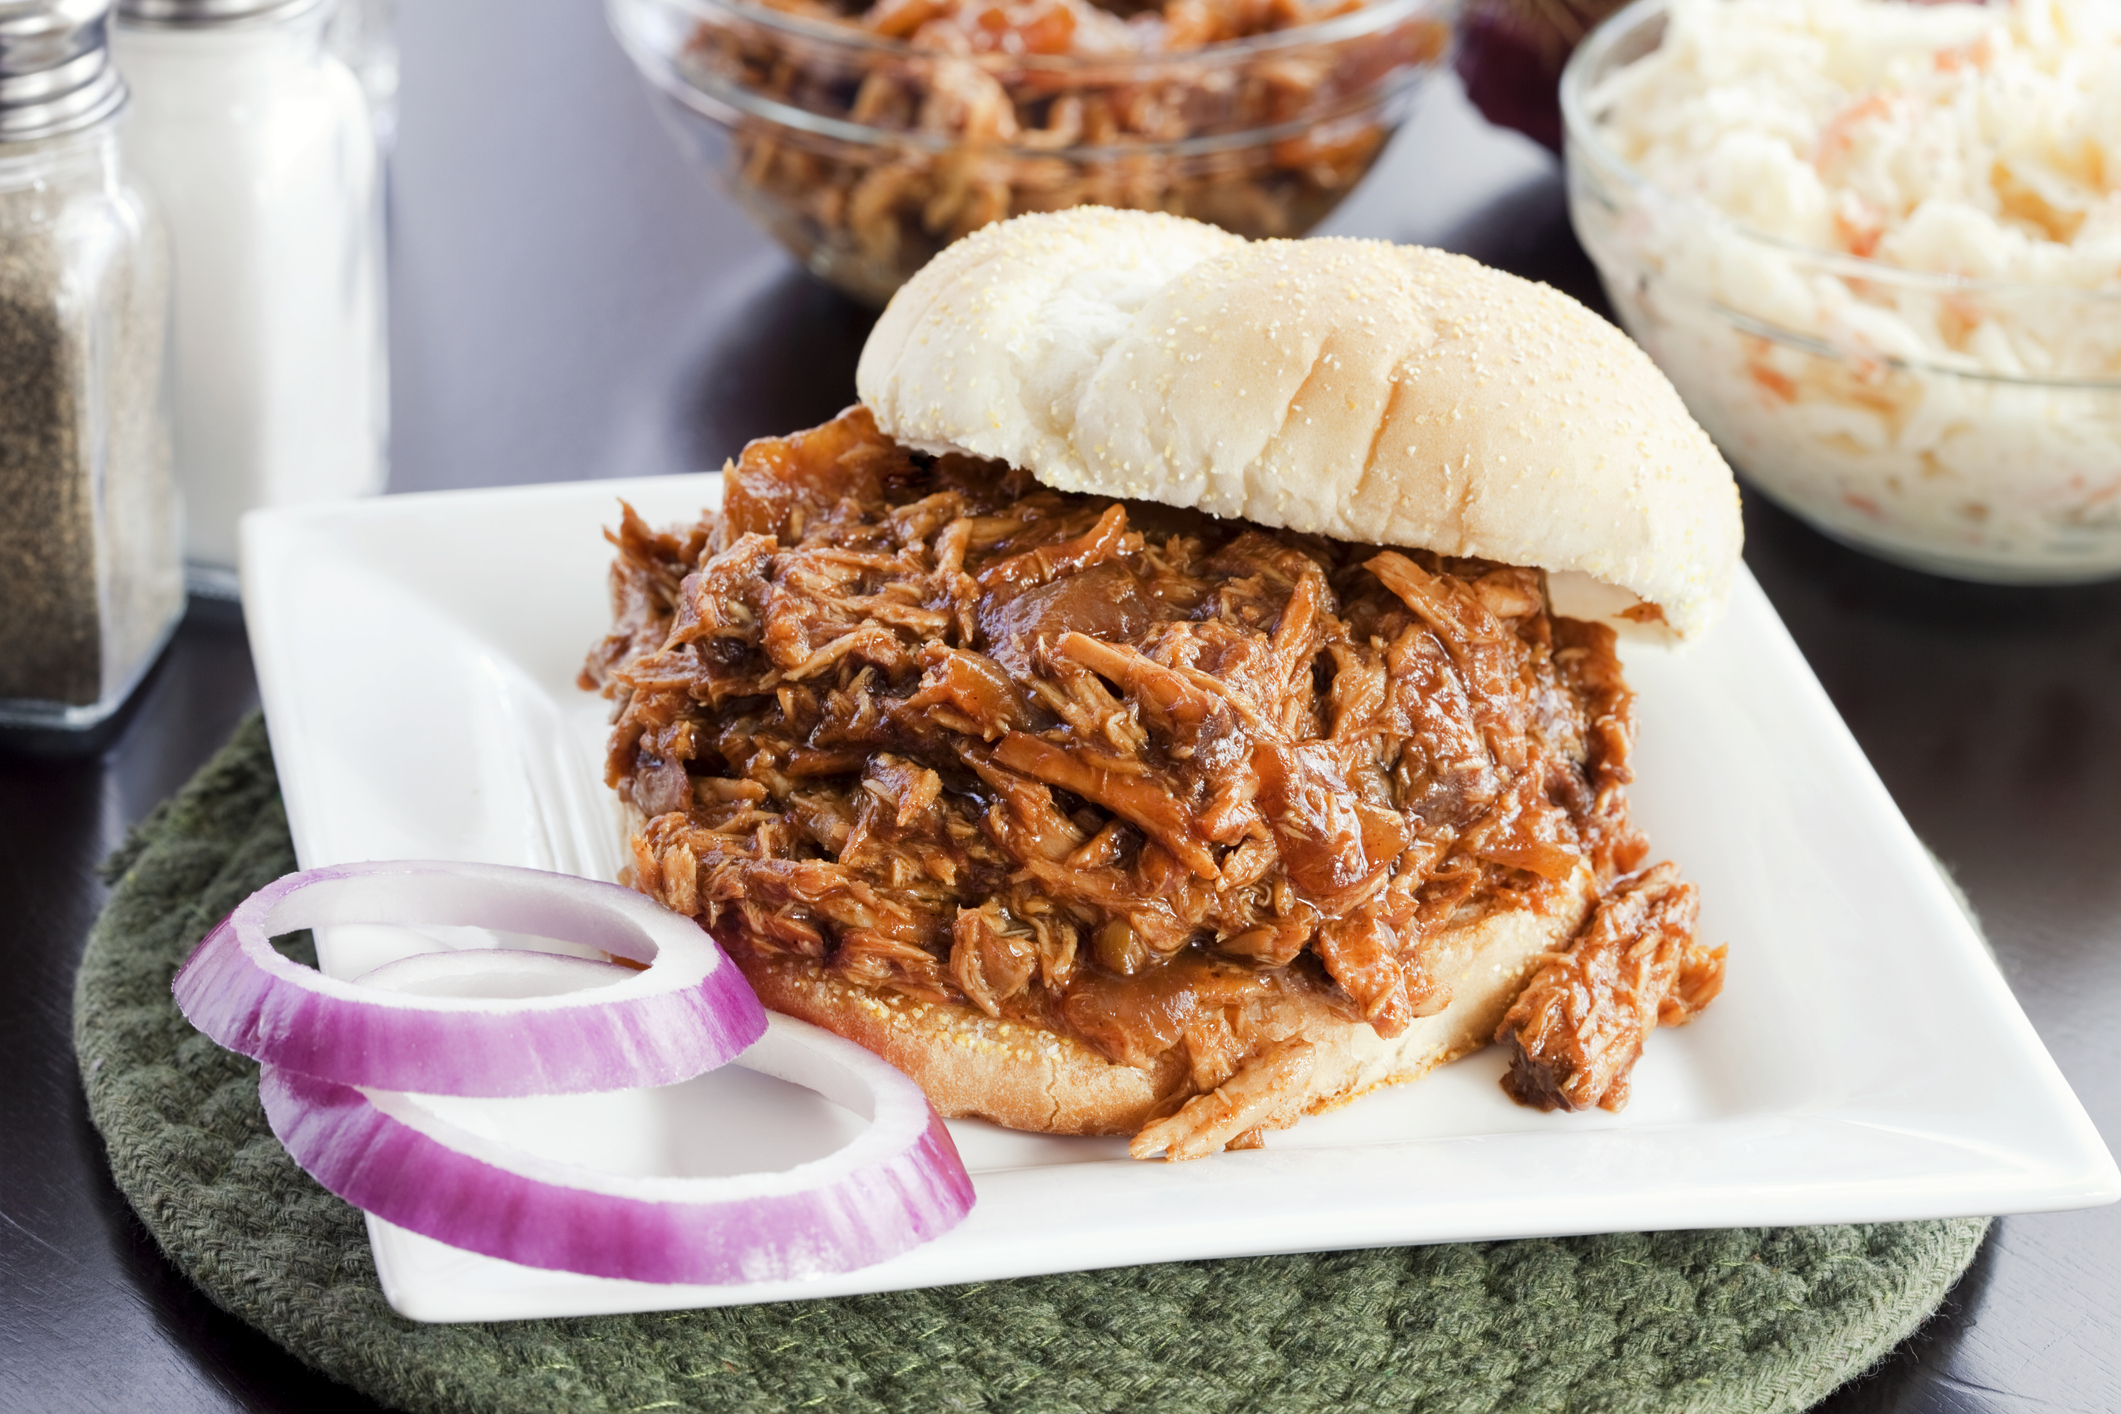 Memorial Day Indoor BBQ Recipe: Instant Pot Pulled Pork Sandwiches